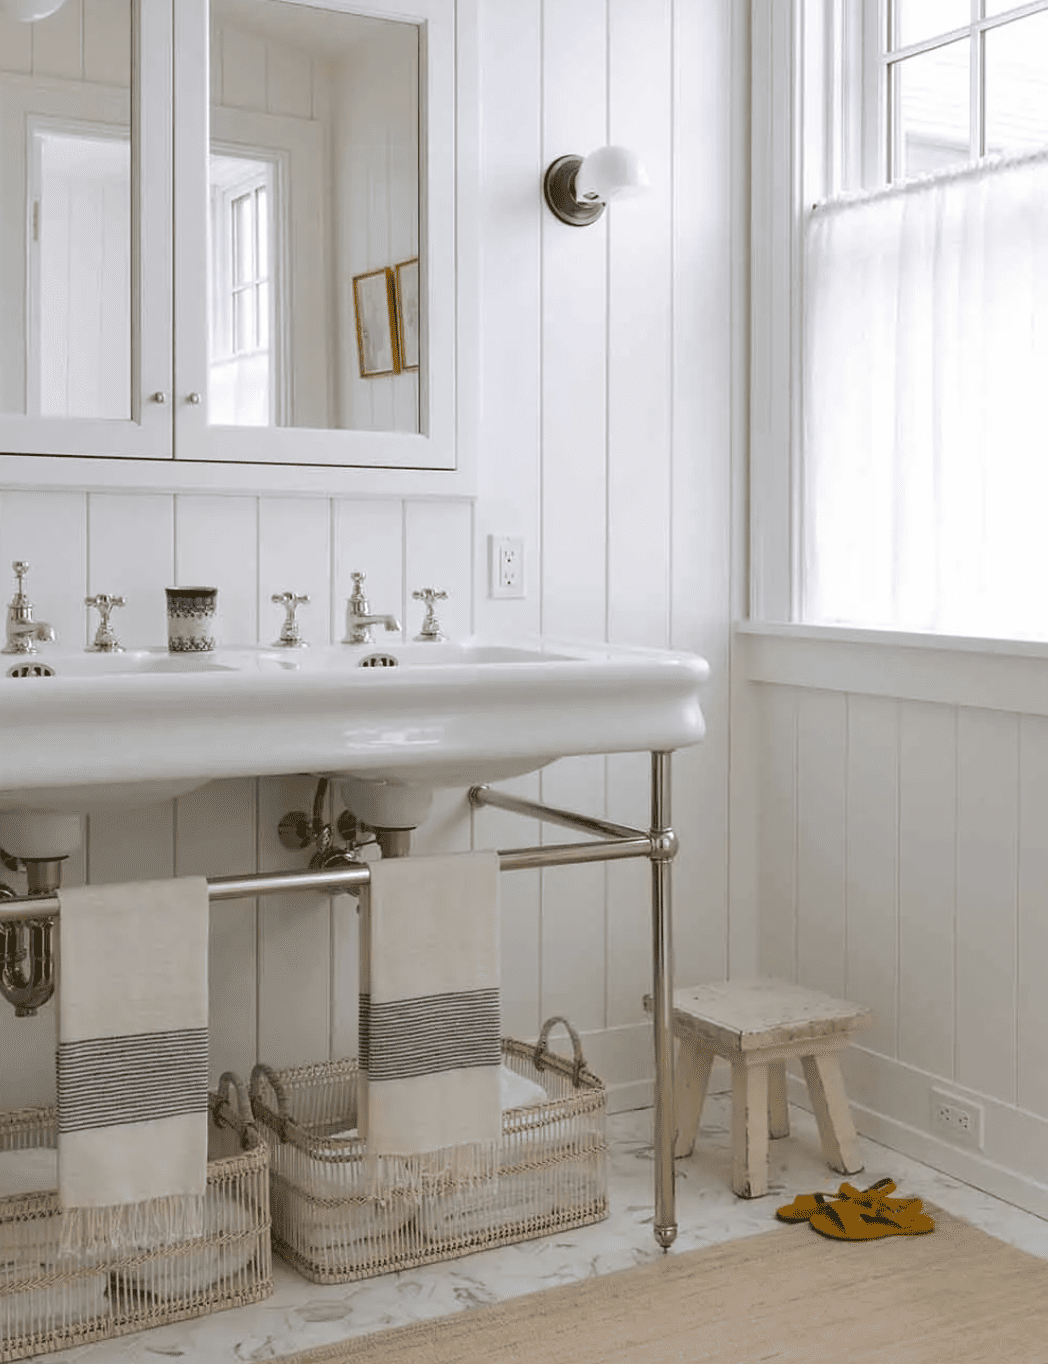 A small primary bathroom with a freestanding sink, a mirror-lined medicine cabinet, and two woven under-sink baskets